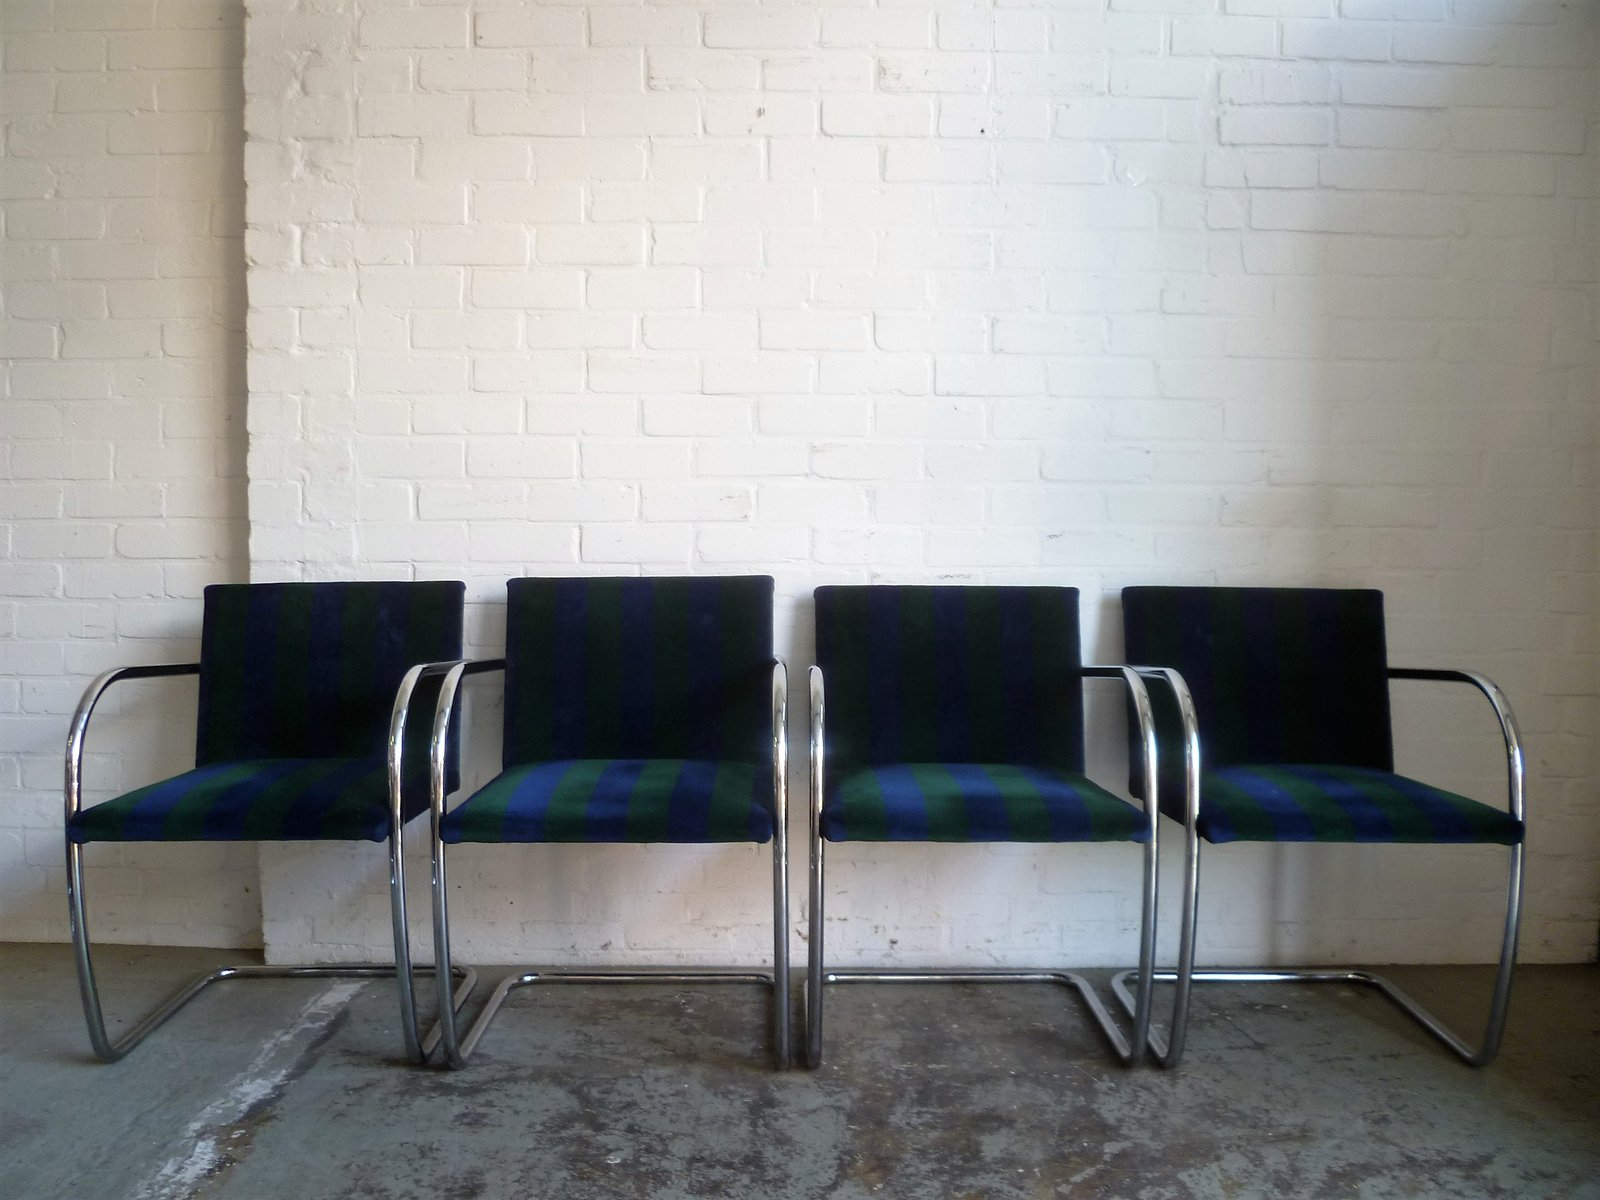 Vintage Brno Chair by Ludwig Mies van der Rohe Set of 4 for sale